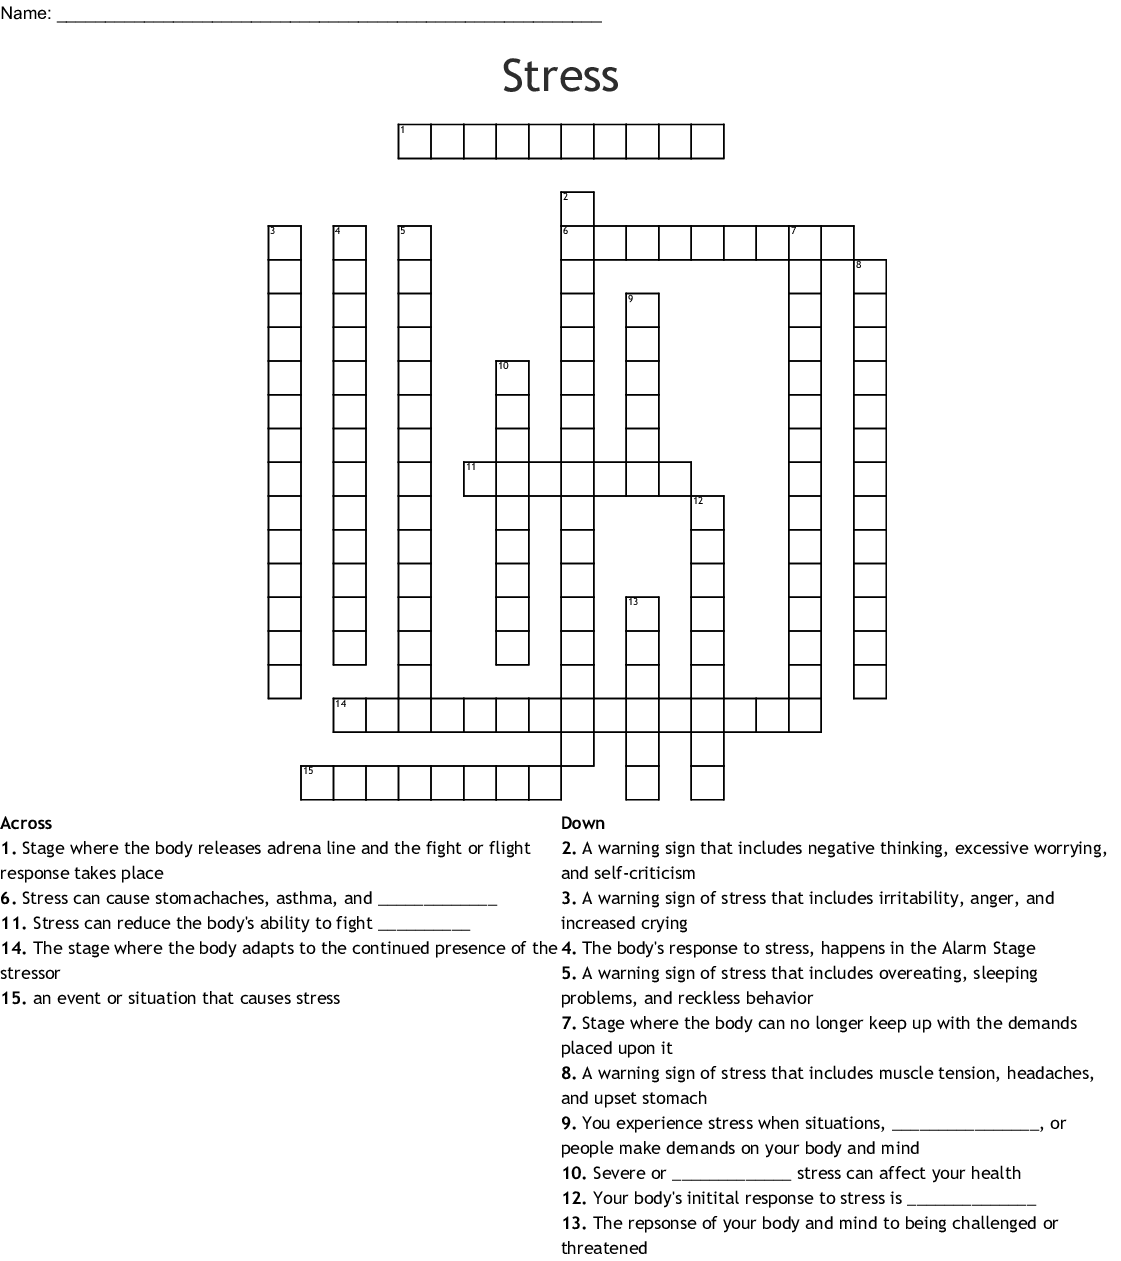 Signs Symptoms Amp Causes Of Stress Word Search